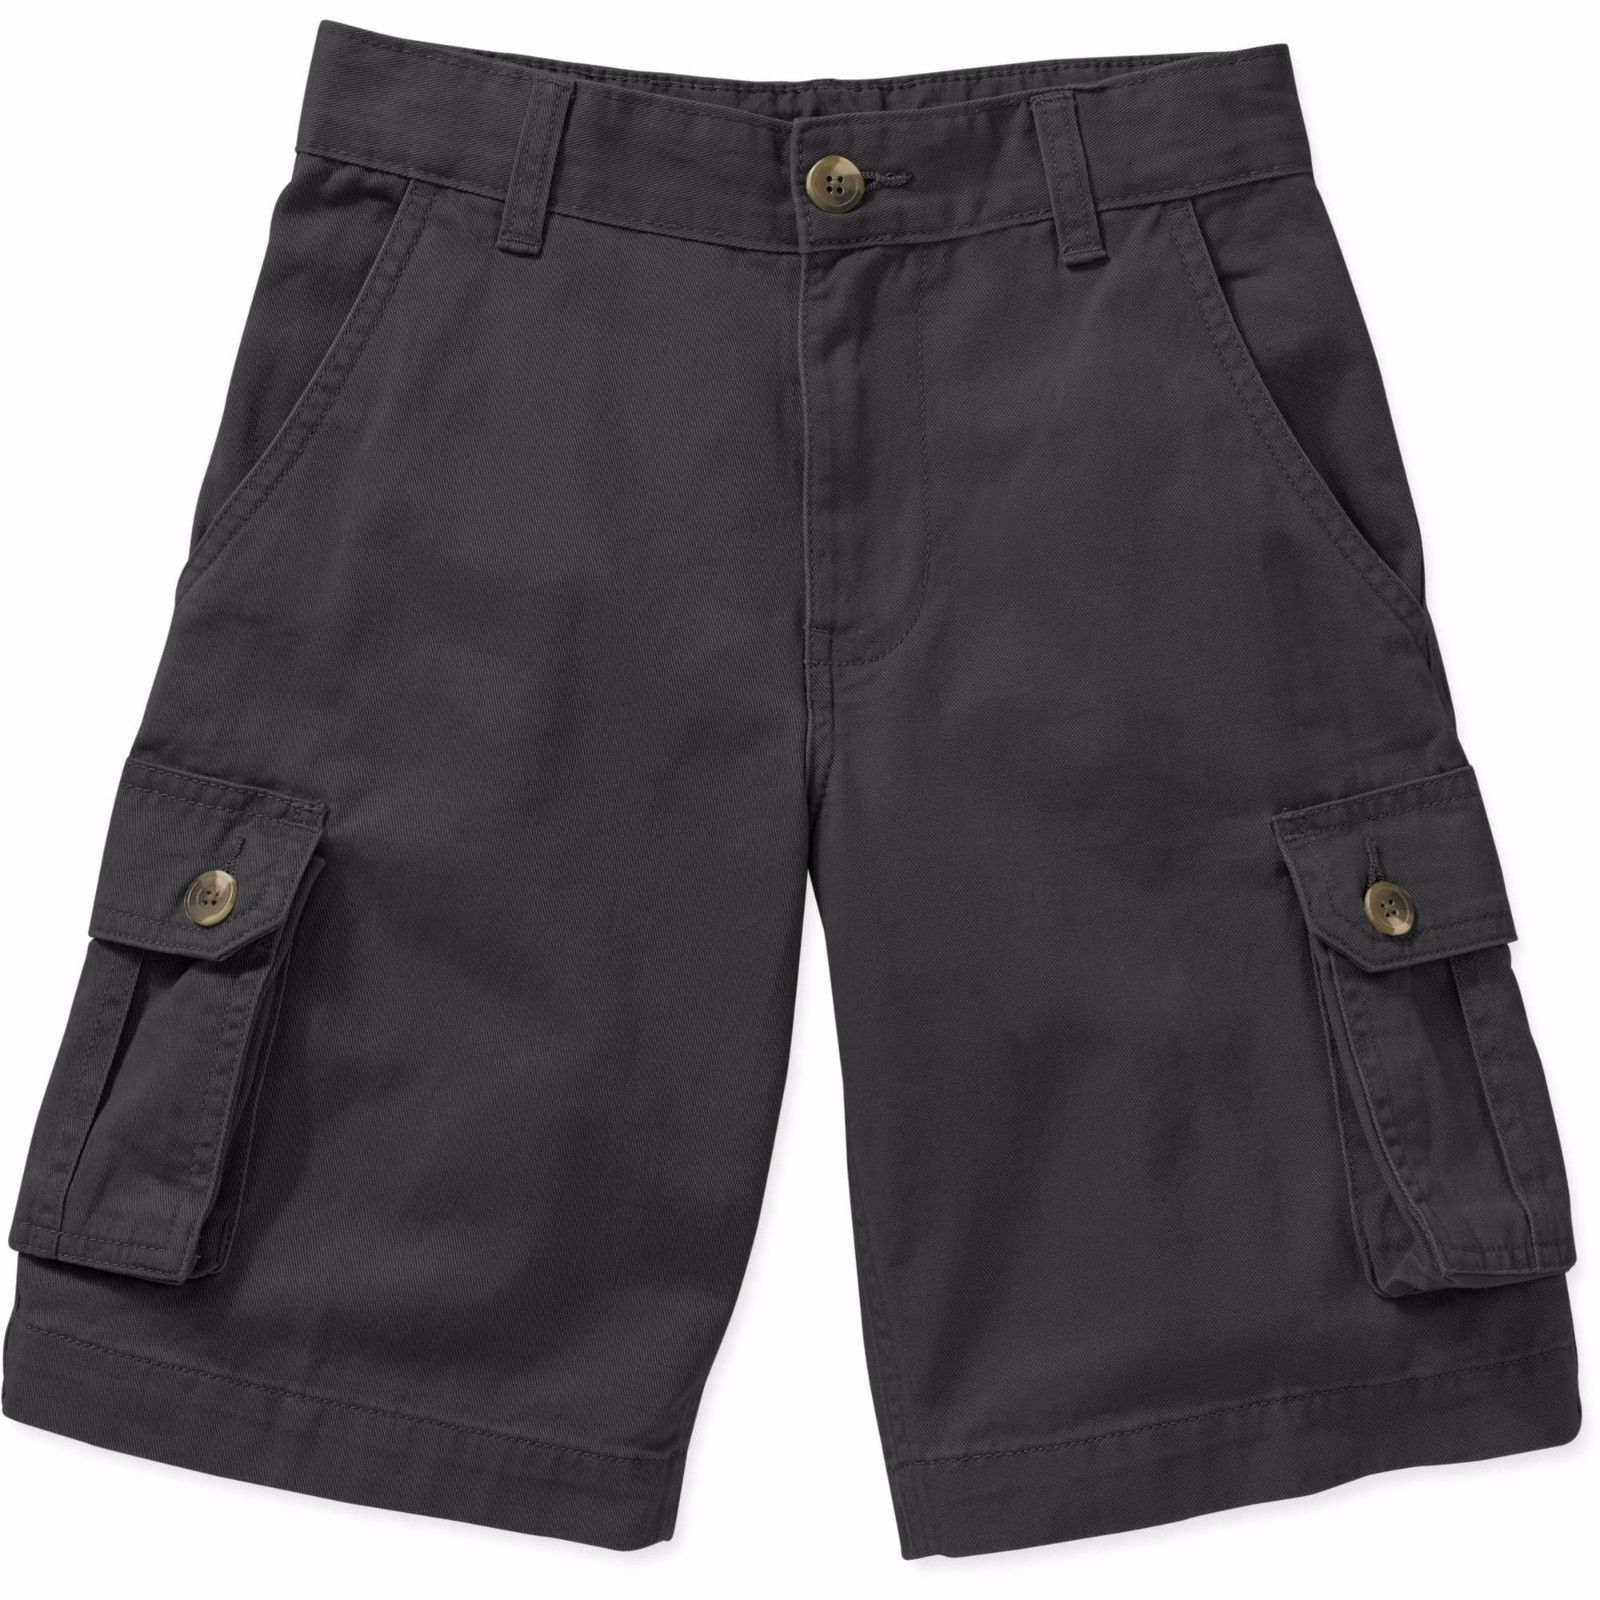 6ddc95b34 Faded Glory Boys Solid Cargo Shorts Black Soot Size 5 NEW - $12.86